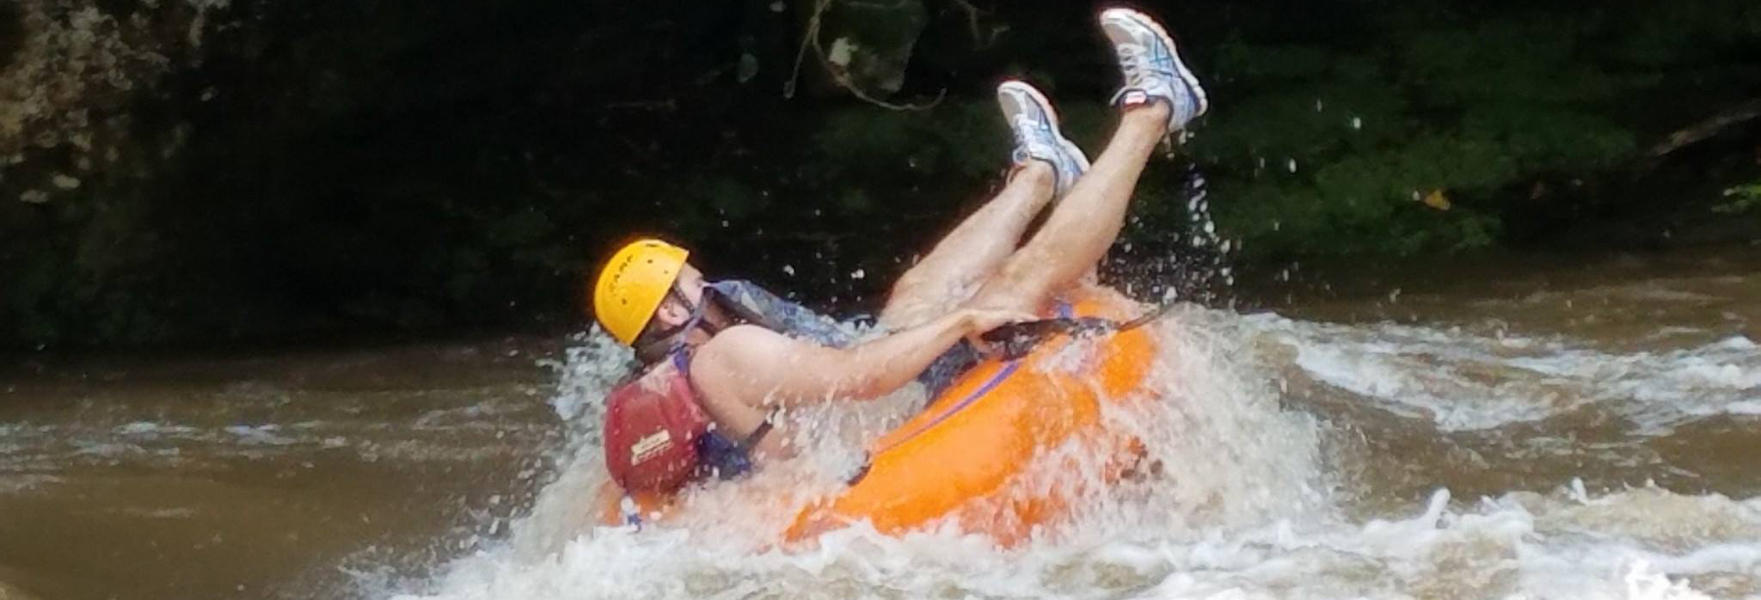 images/slides/whitewater-tubing-1.jpg